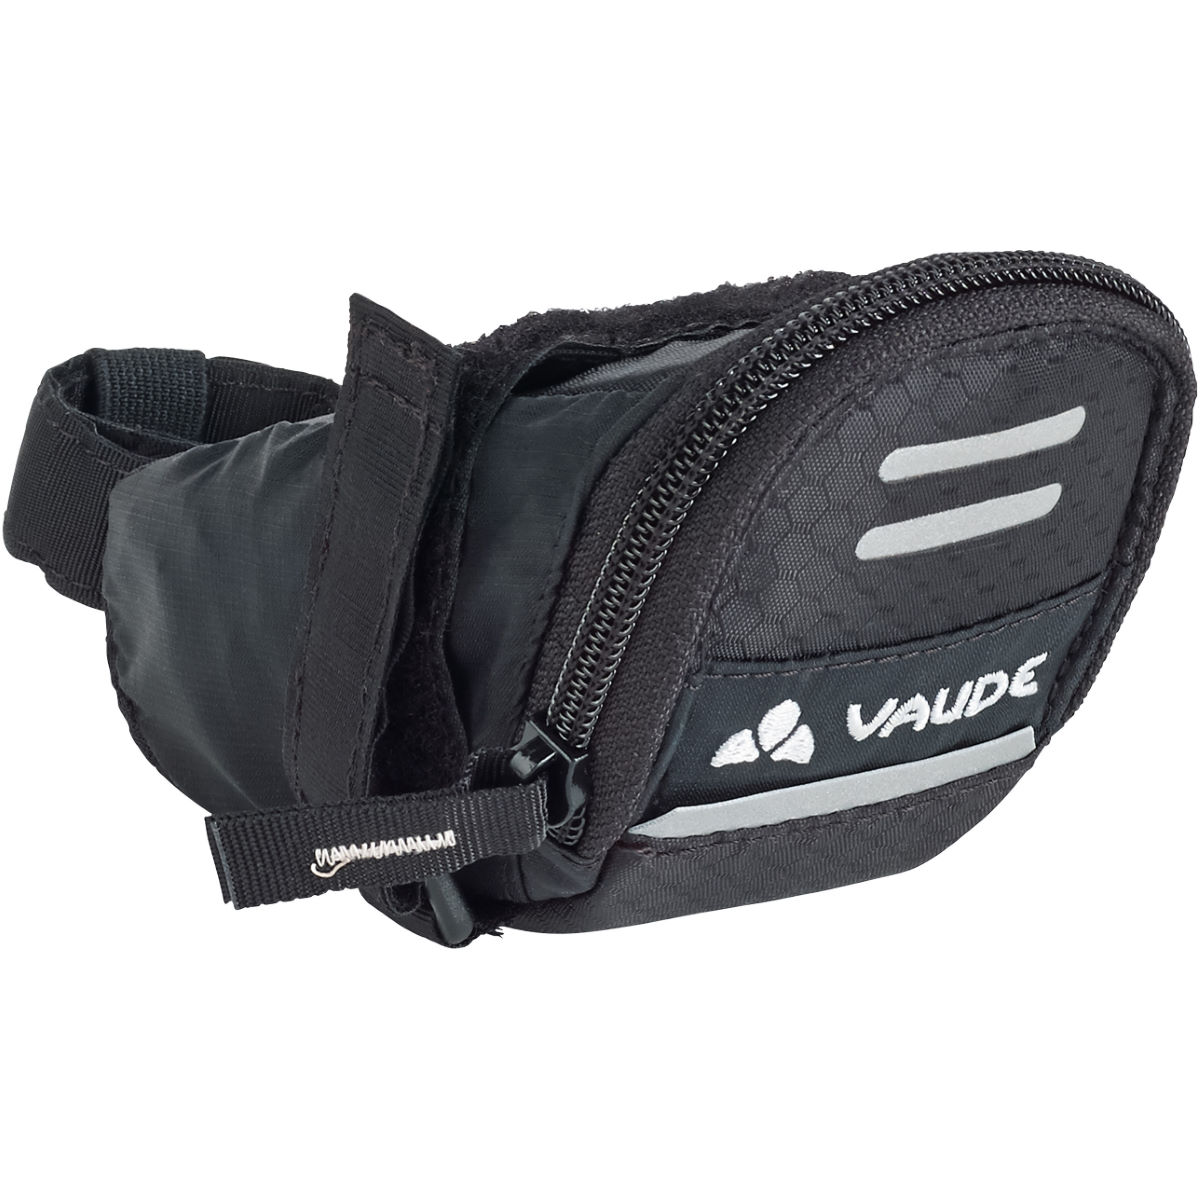 Vaude Race Light Saddle Bag - Bolsas de sillín